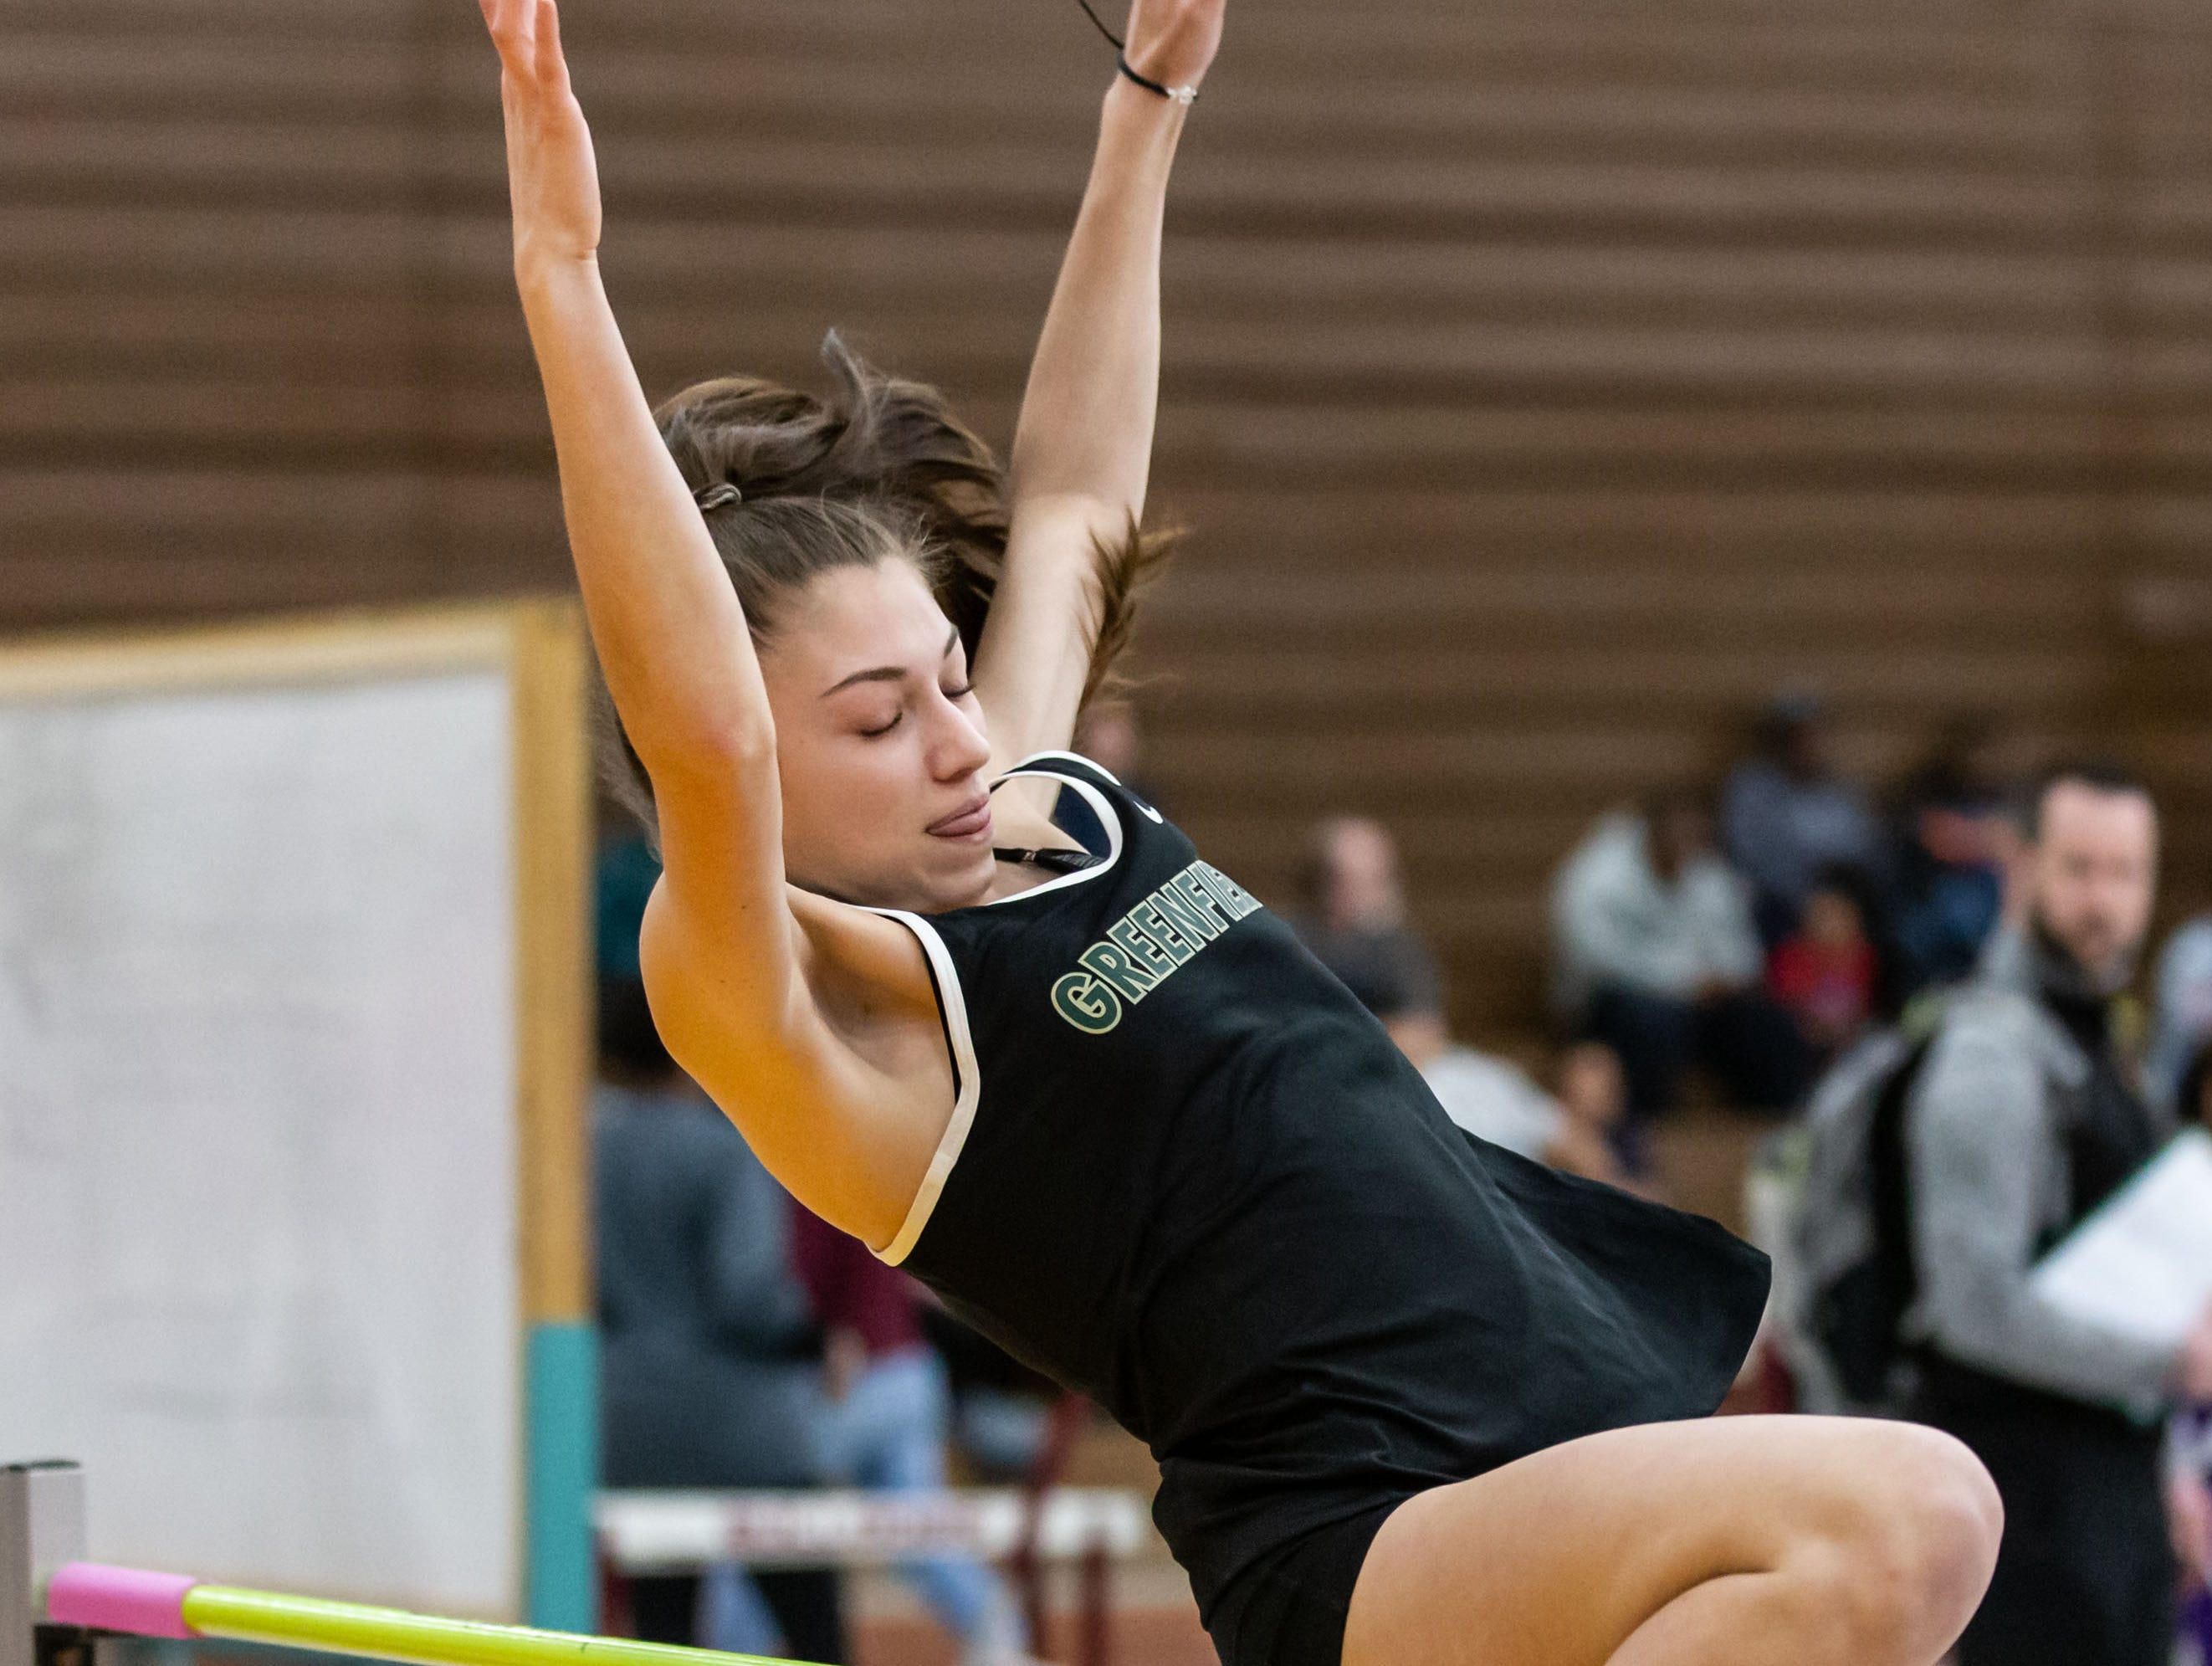 Greenfield's Erika Guajardo competes on the high jump at the Reinhard Bulldog Relays hosted by West Allis Central on Friday, March 15, 2019.